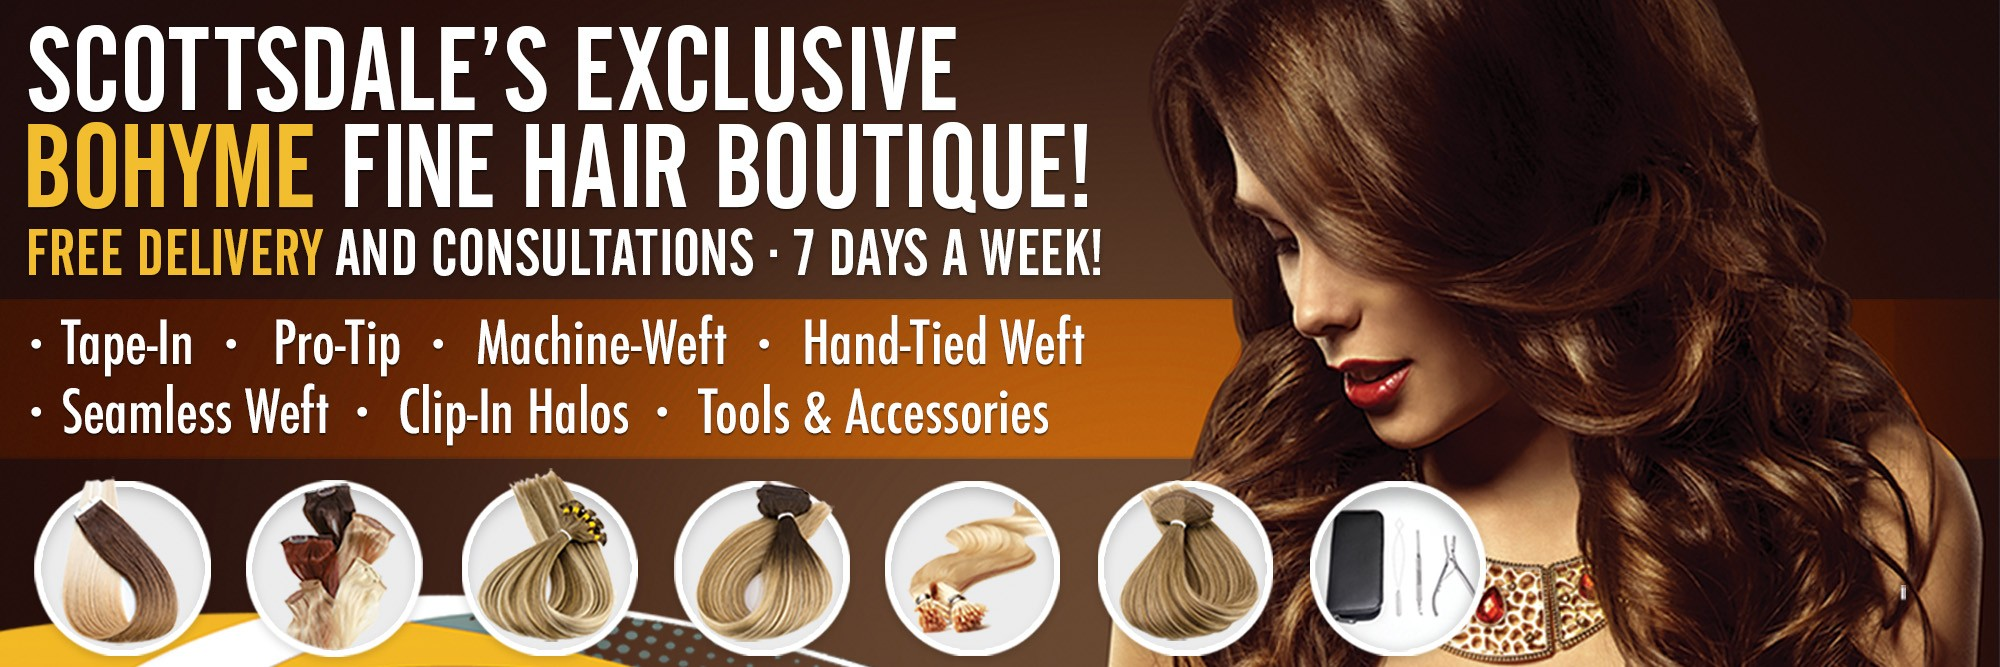 Scotsdales's exclusive Bohyme Fine Hair Boutique!